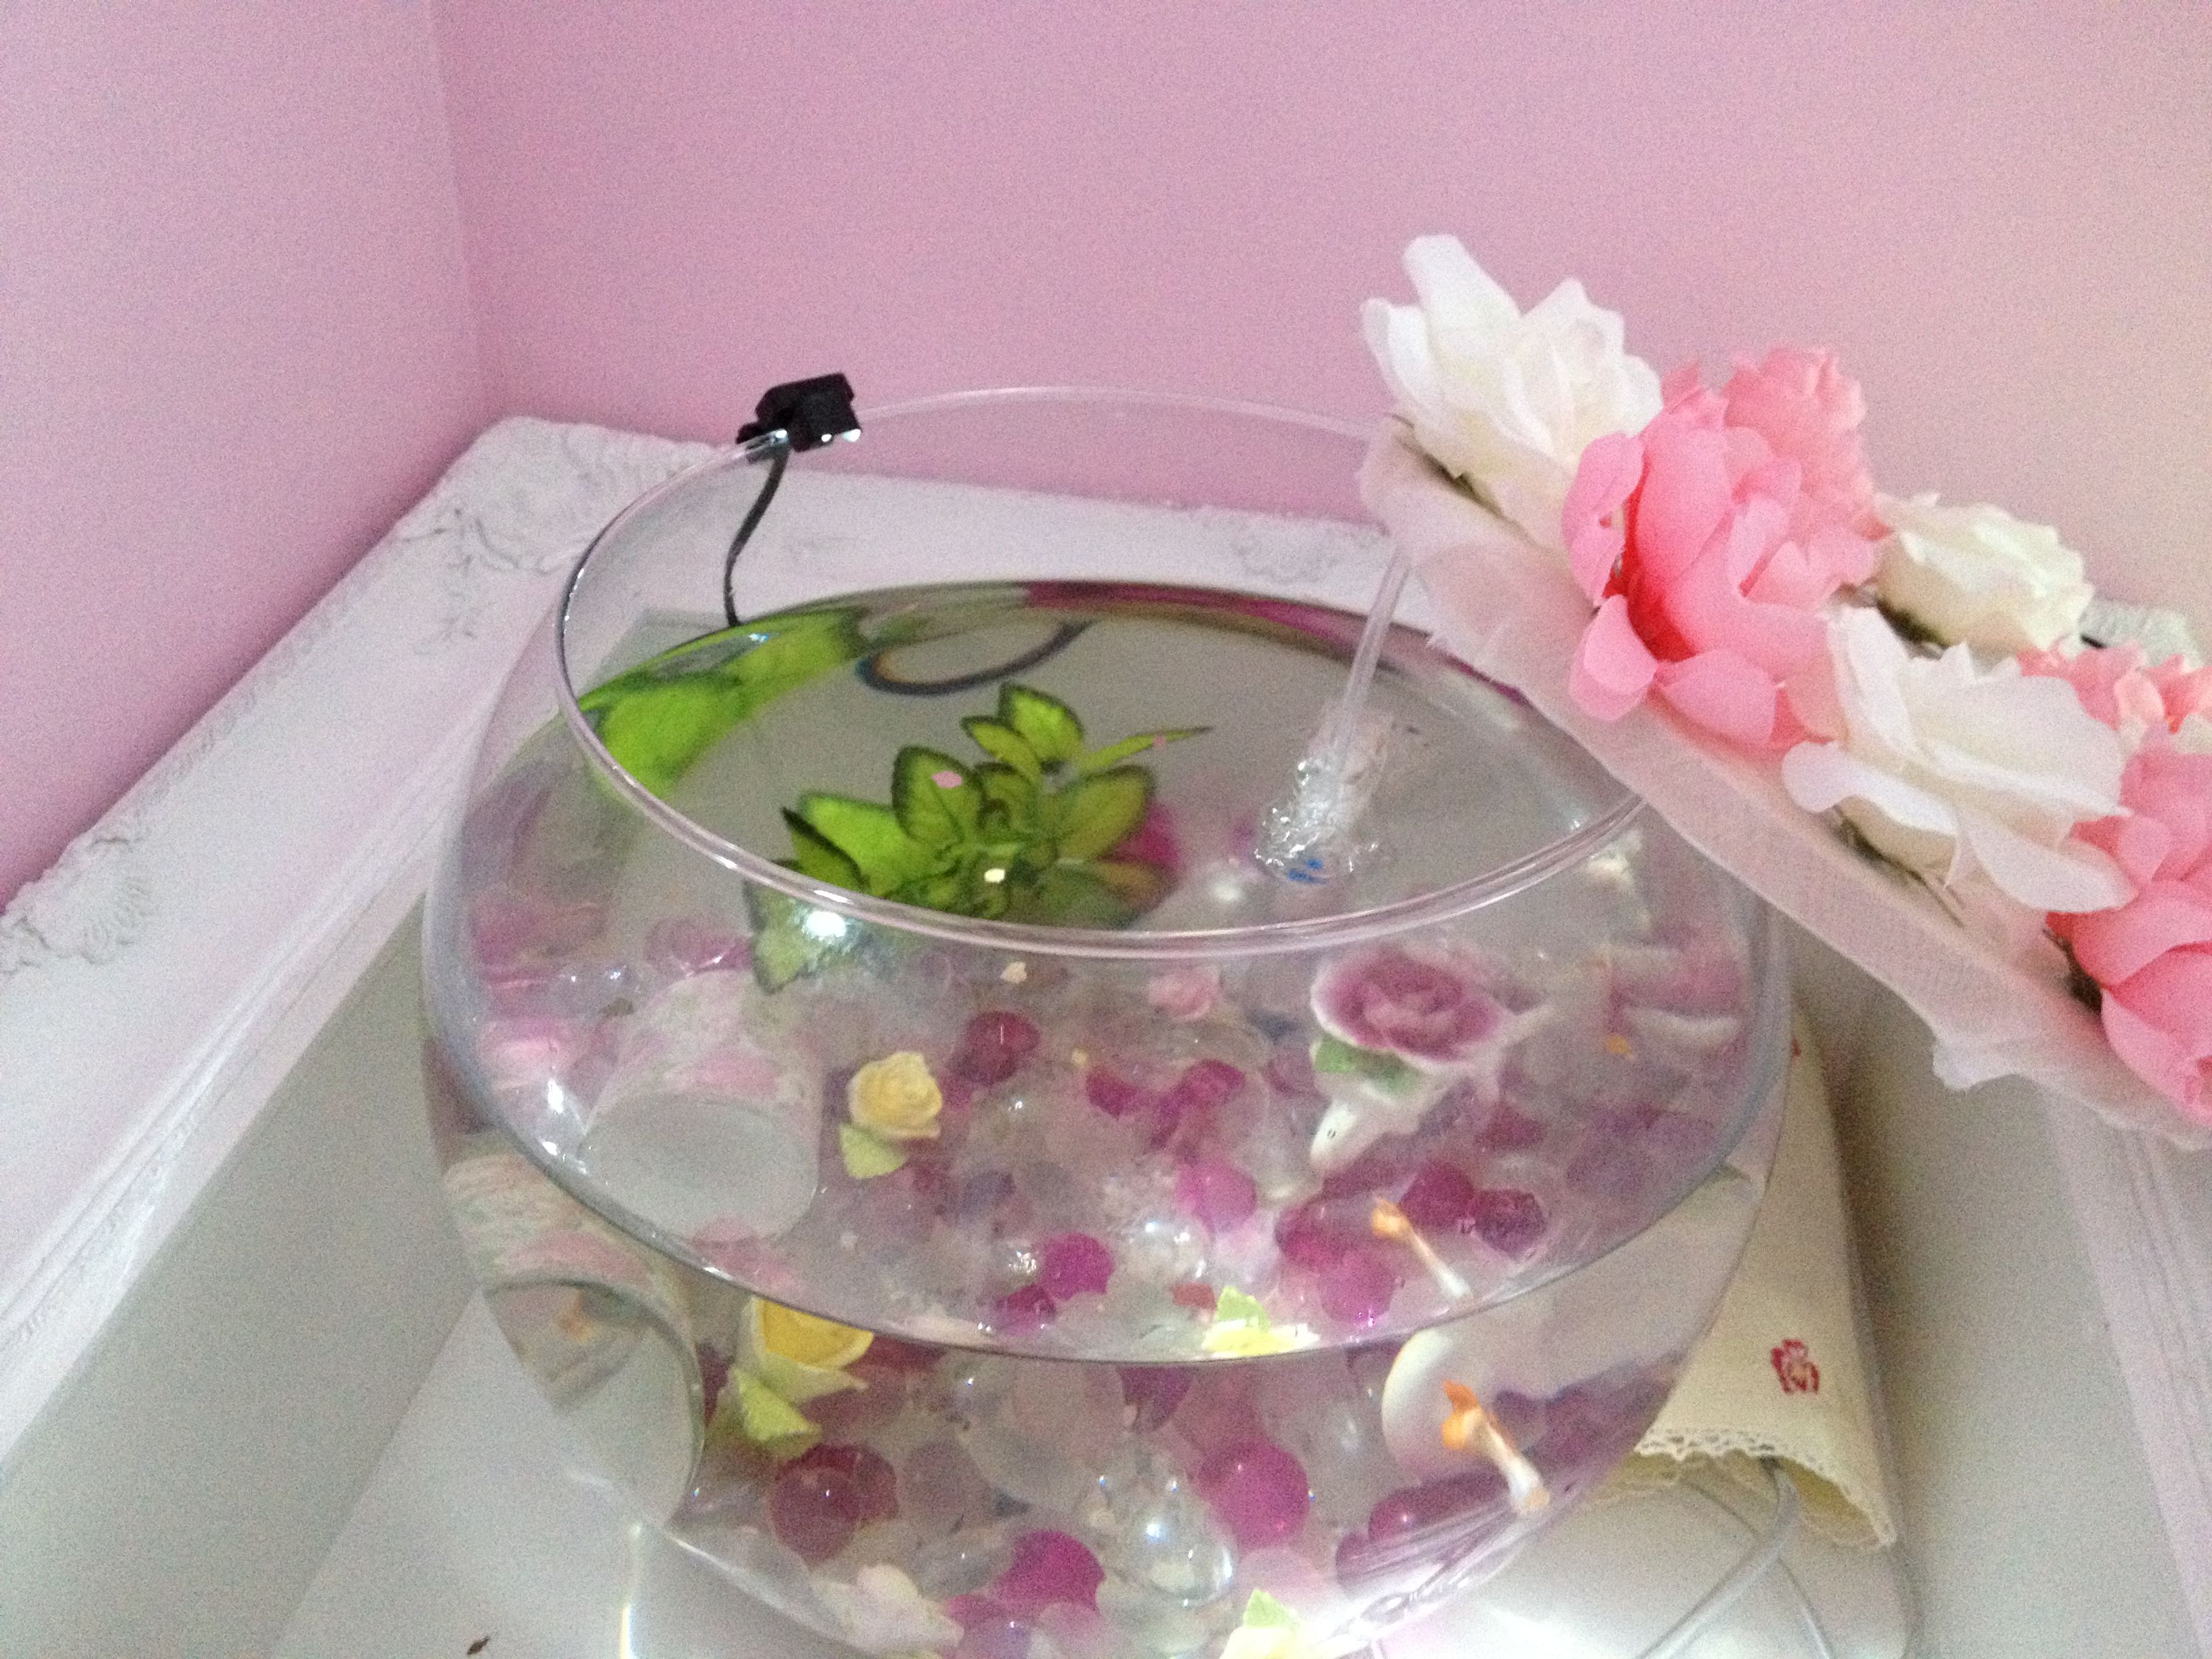 Fish tank used - Shabby Chic Fish Tank Used A Cross Stitch Wood Hoop For The Lid